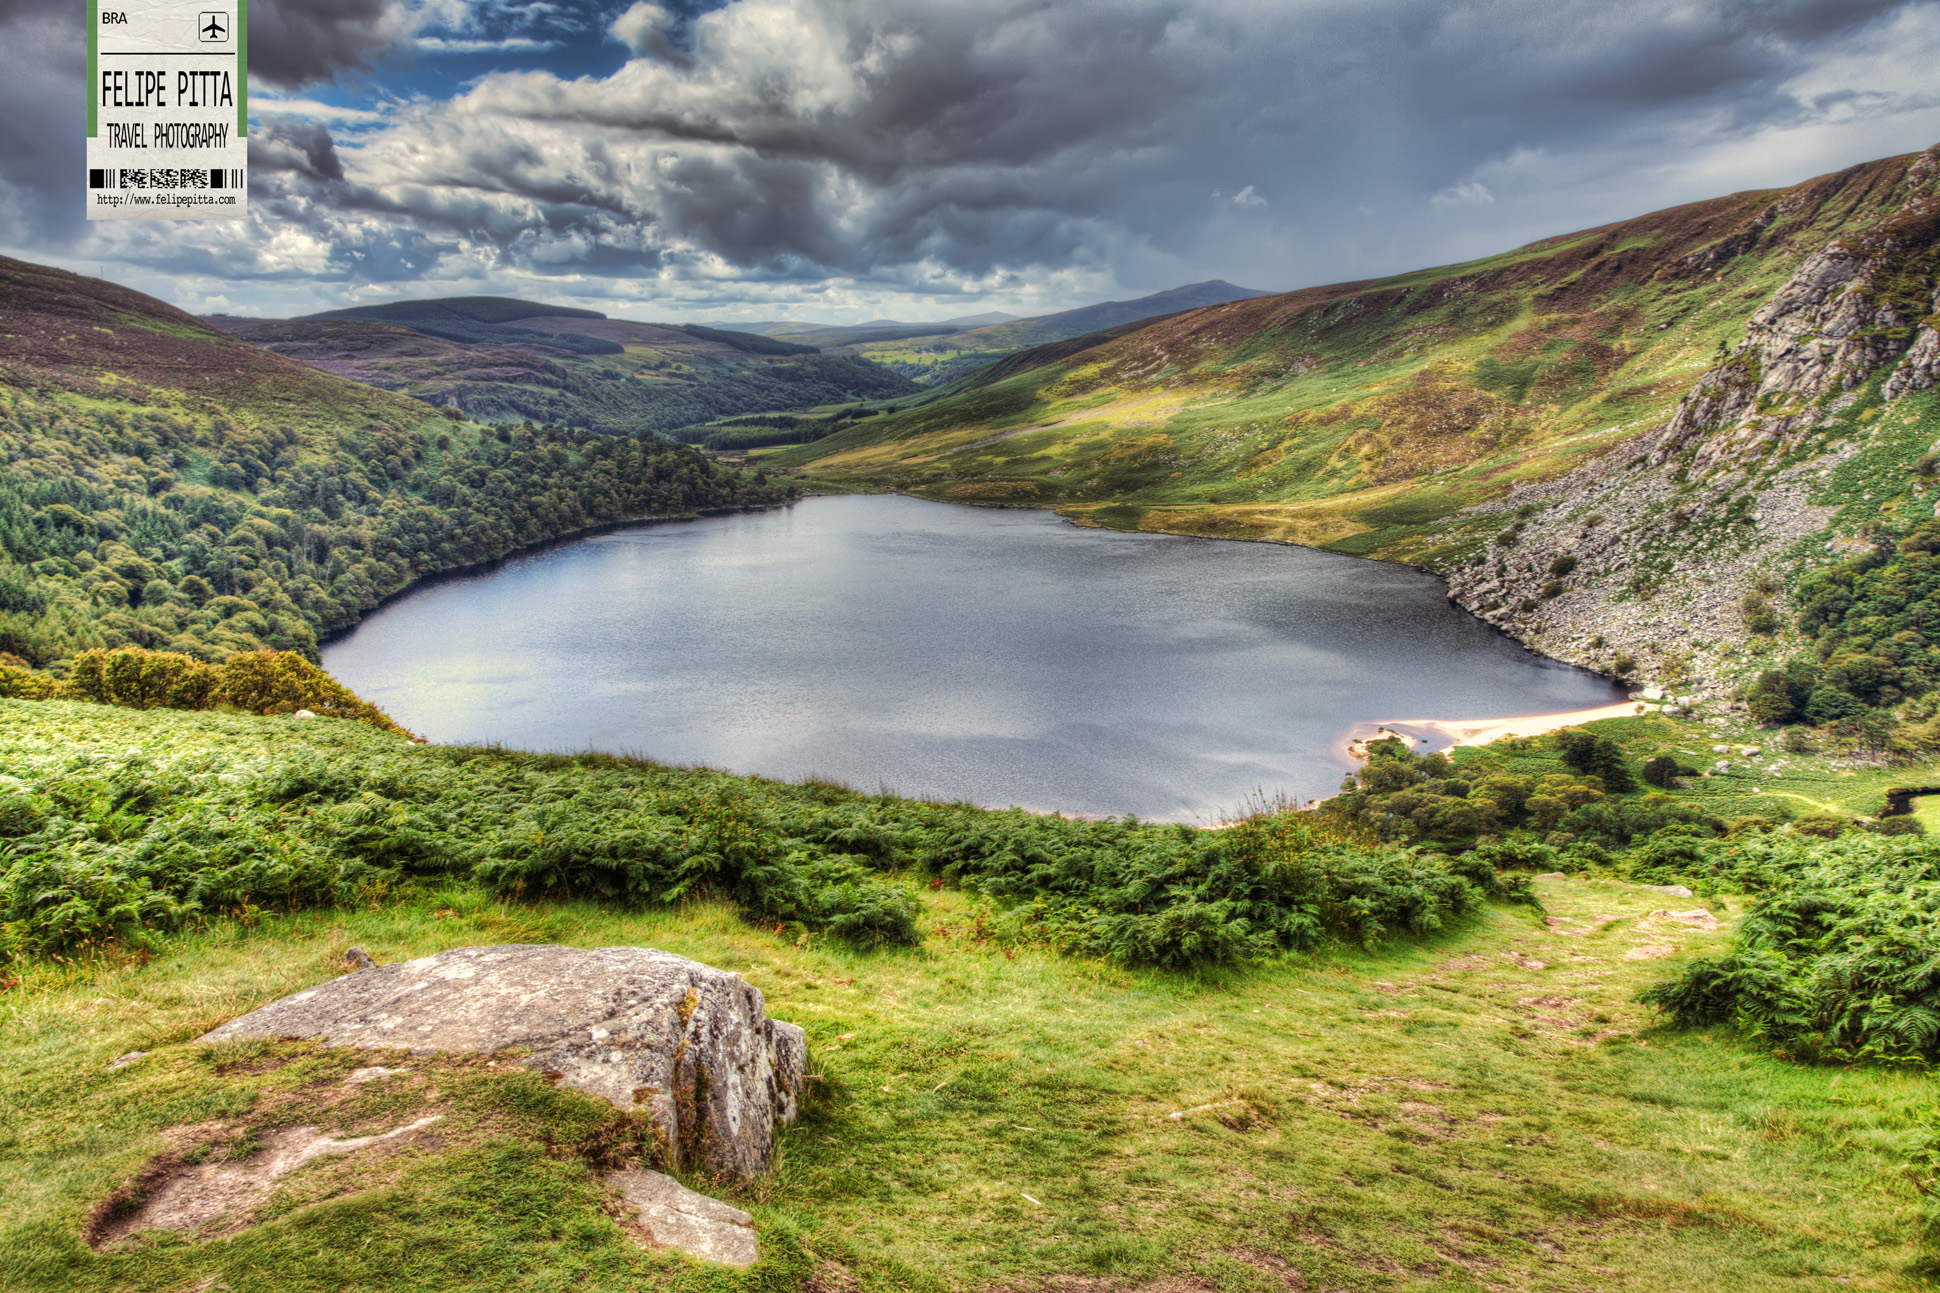 Lough Tay, Wicklow Mountains, Ireland